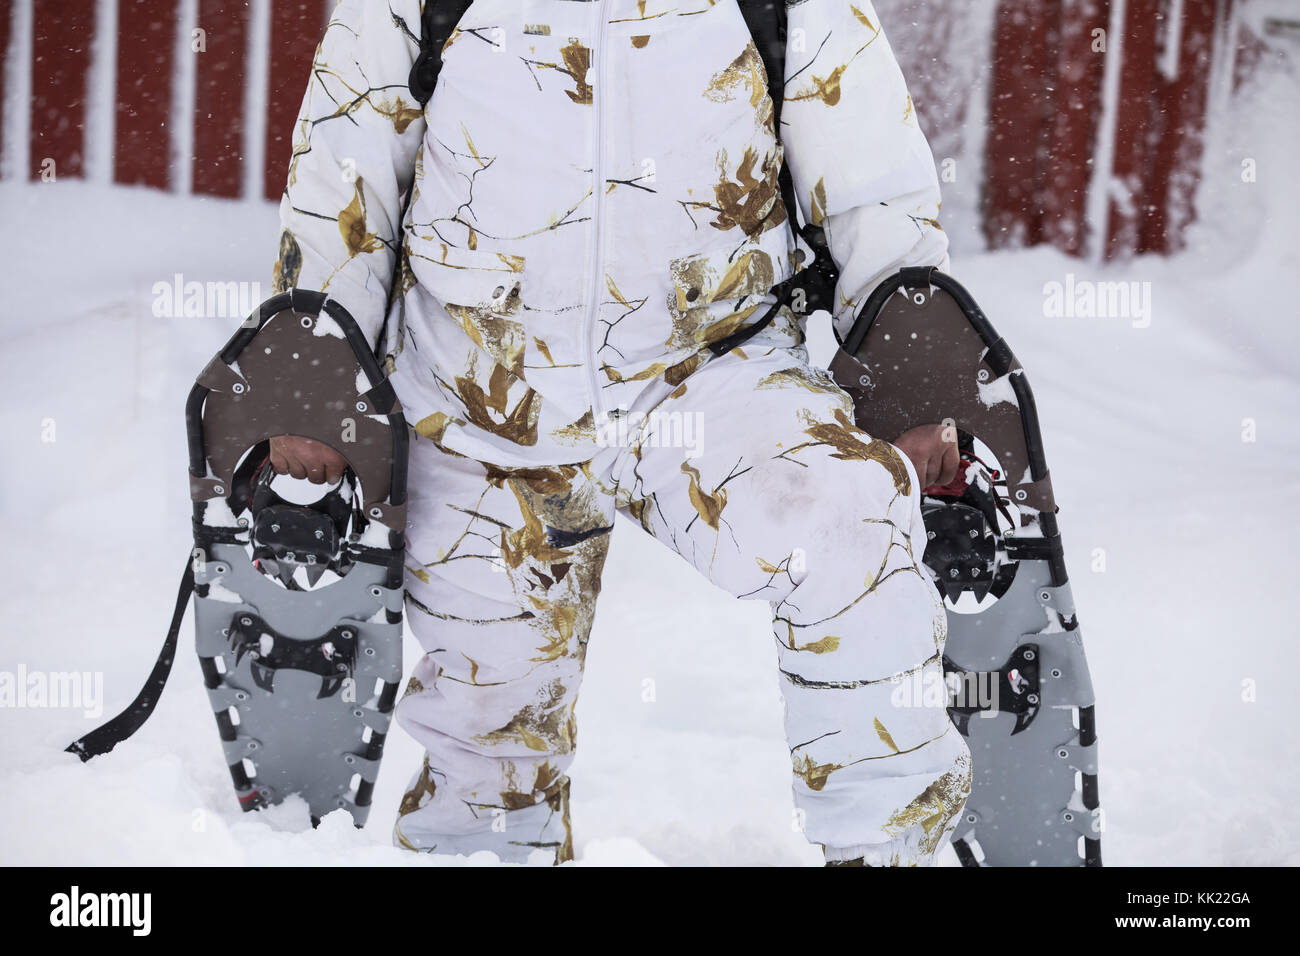 Winter snowshoeing. Man dressed in winter camo clothing, holding snowshoes outside his red cabin in the snow, when - Stock Image